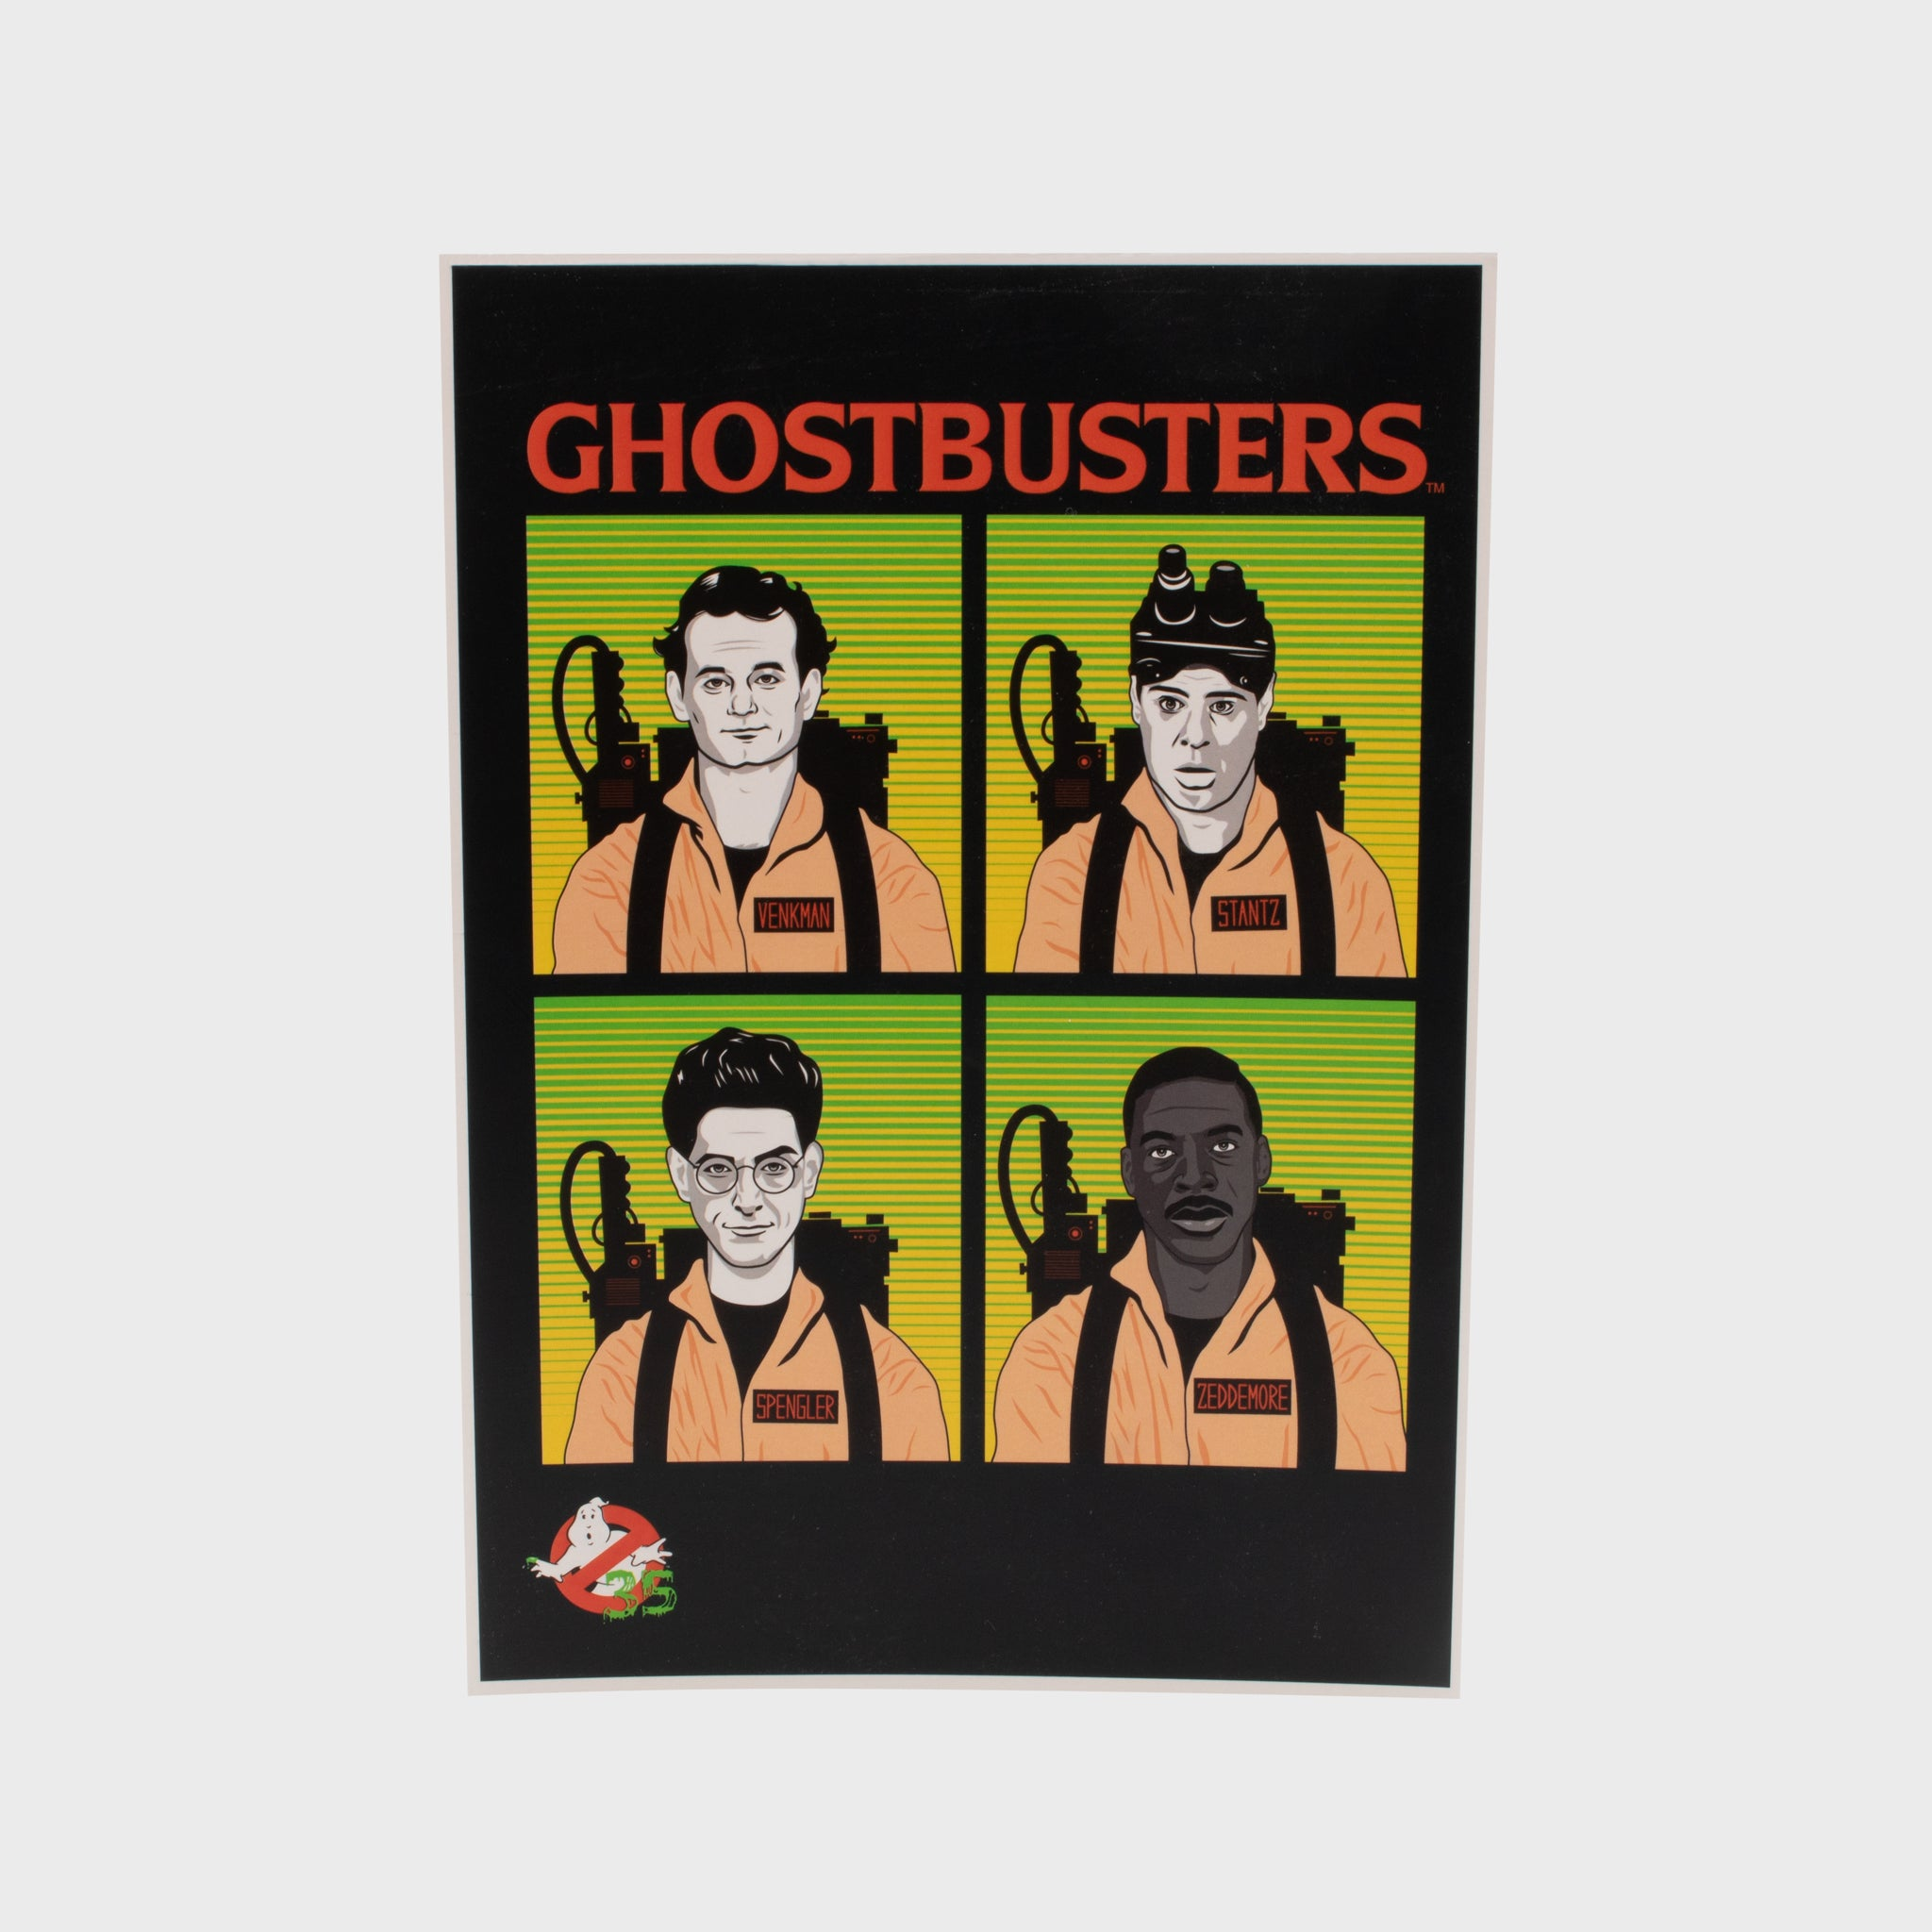 ghostbusters 80s stay puft gamestop retail box collectibles exclusive accessories culturefly art print poster Peter Venkman Raymond Ray Stantz Egon Spengler Winston Zeddemore